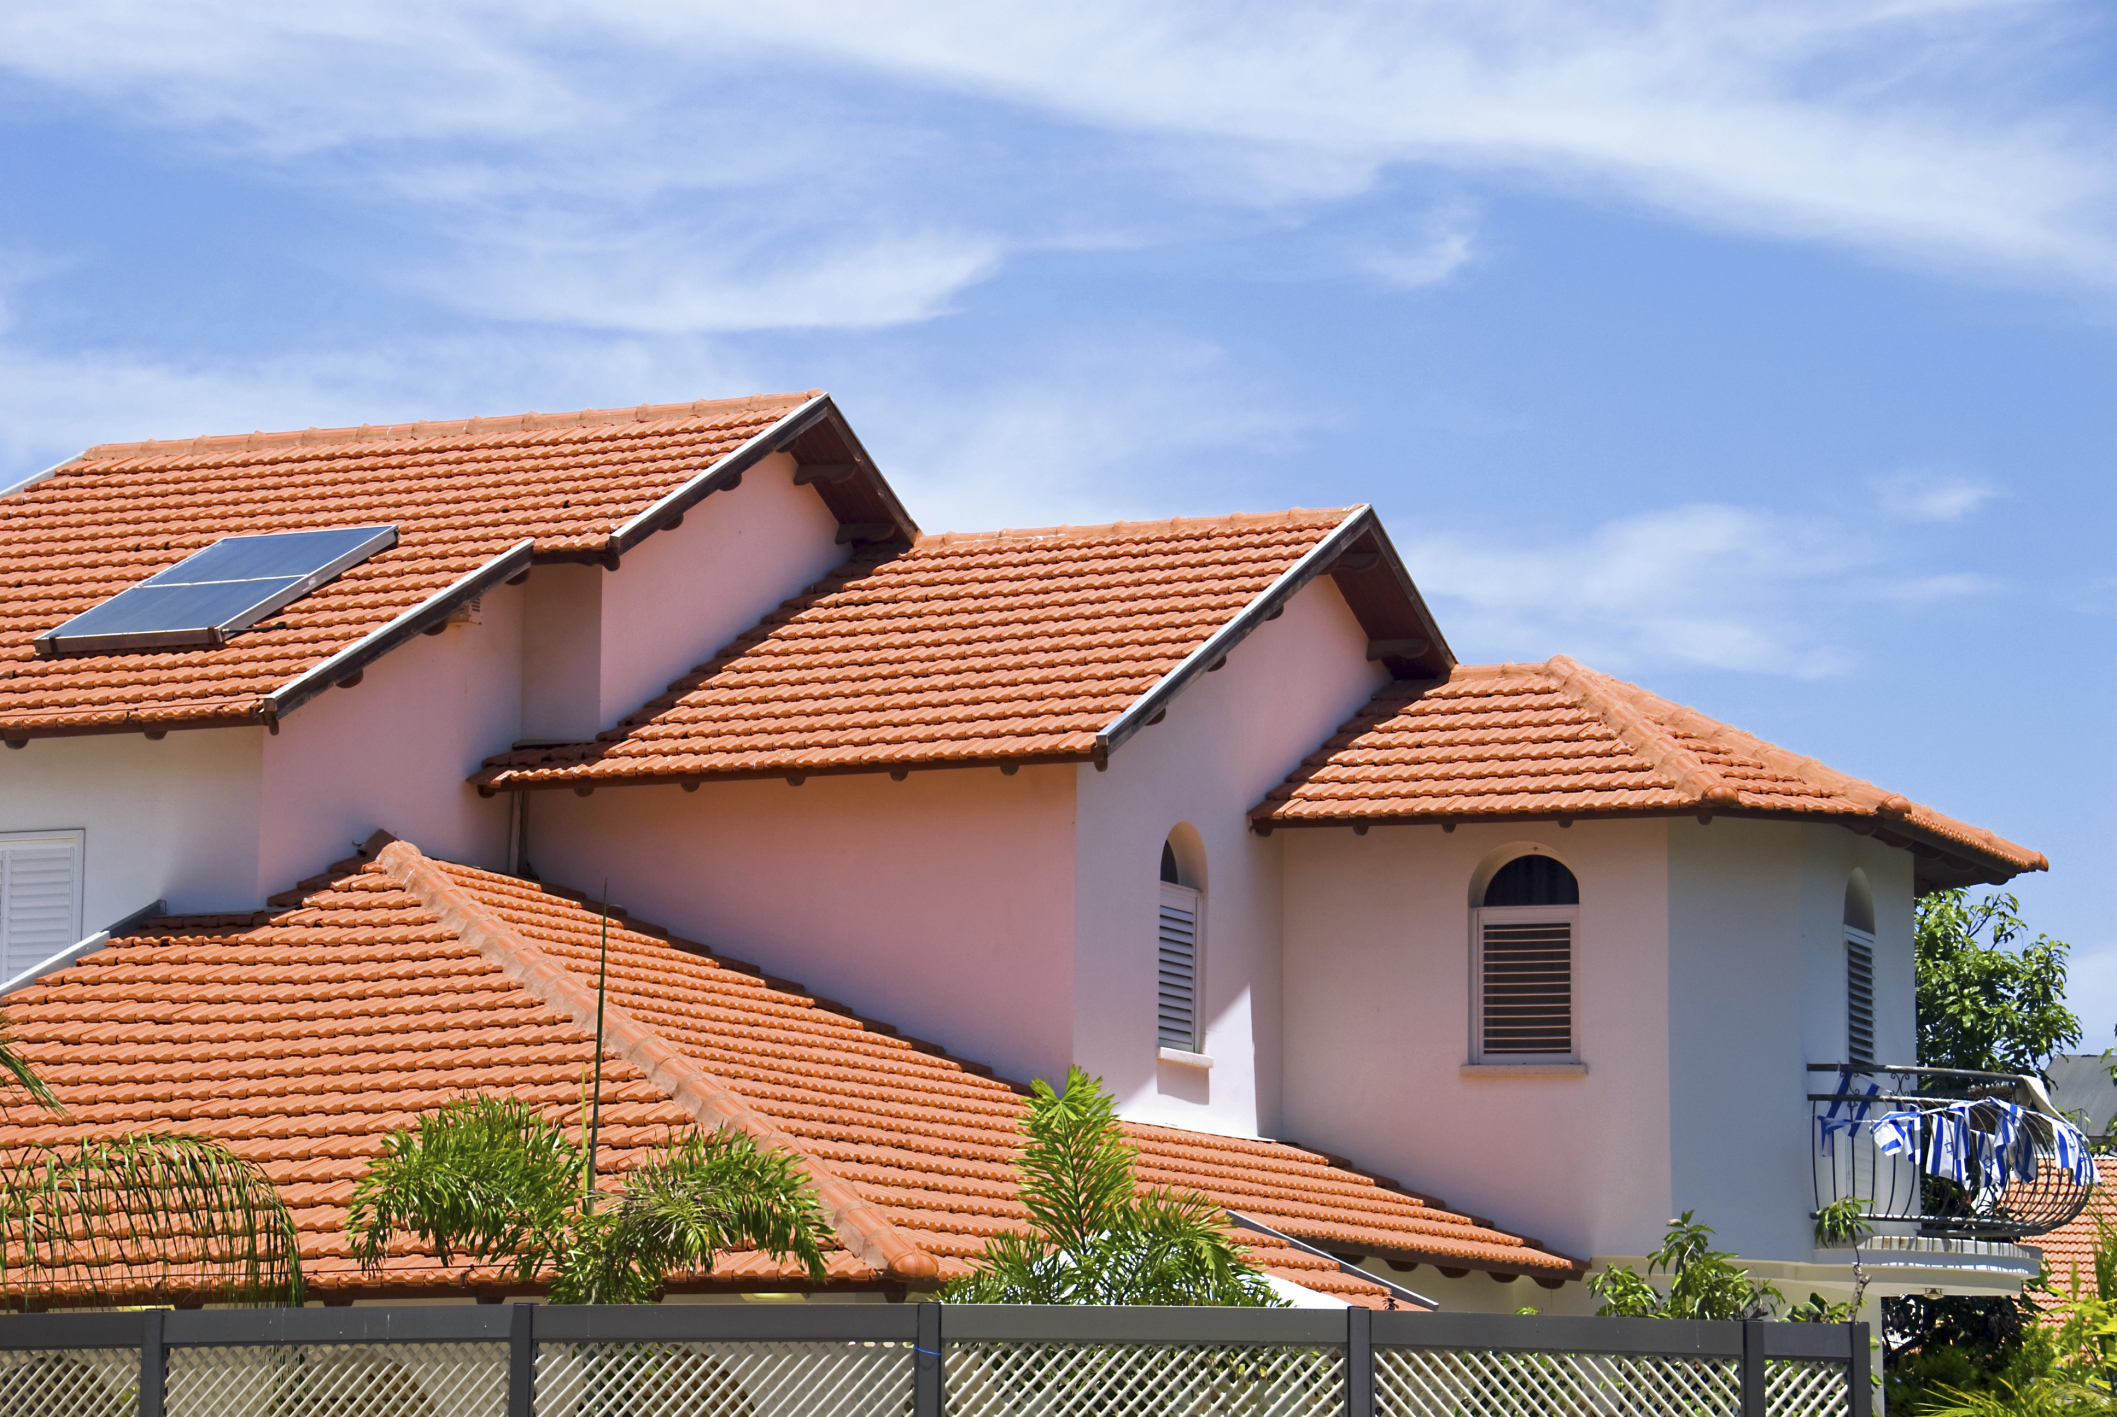 tile roofing, hamilton roofing, roofers in hamilton, burlington roofing, roofers in burlington